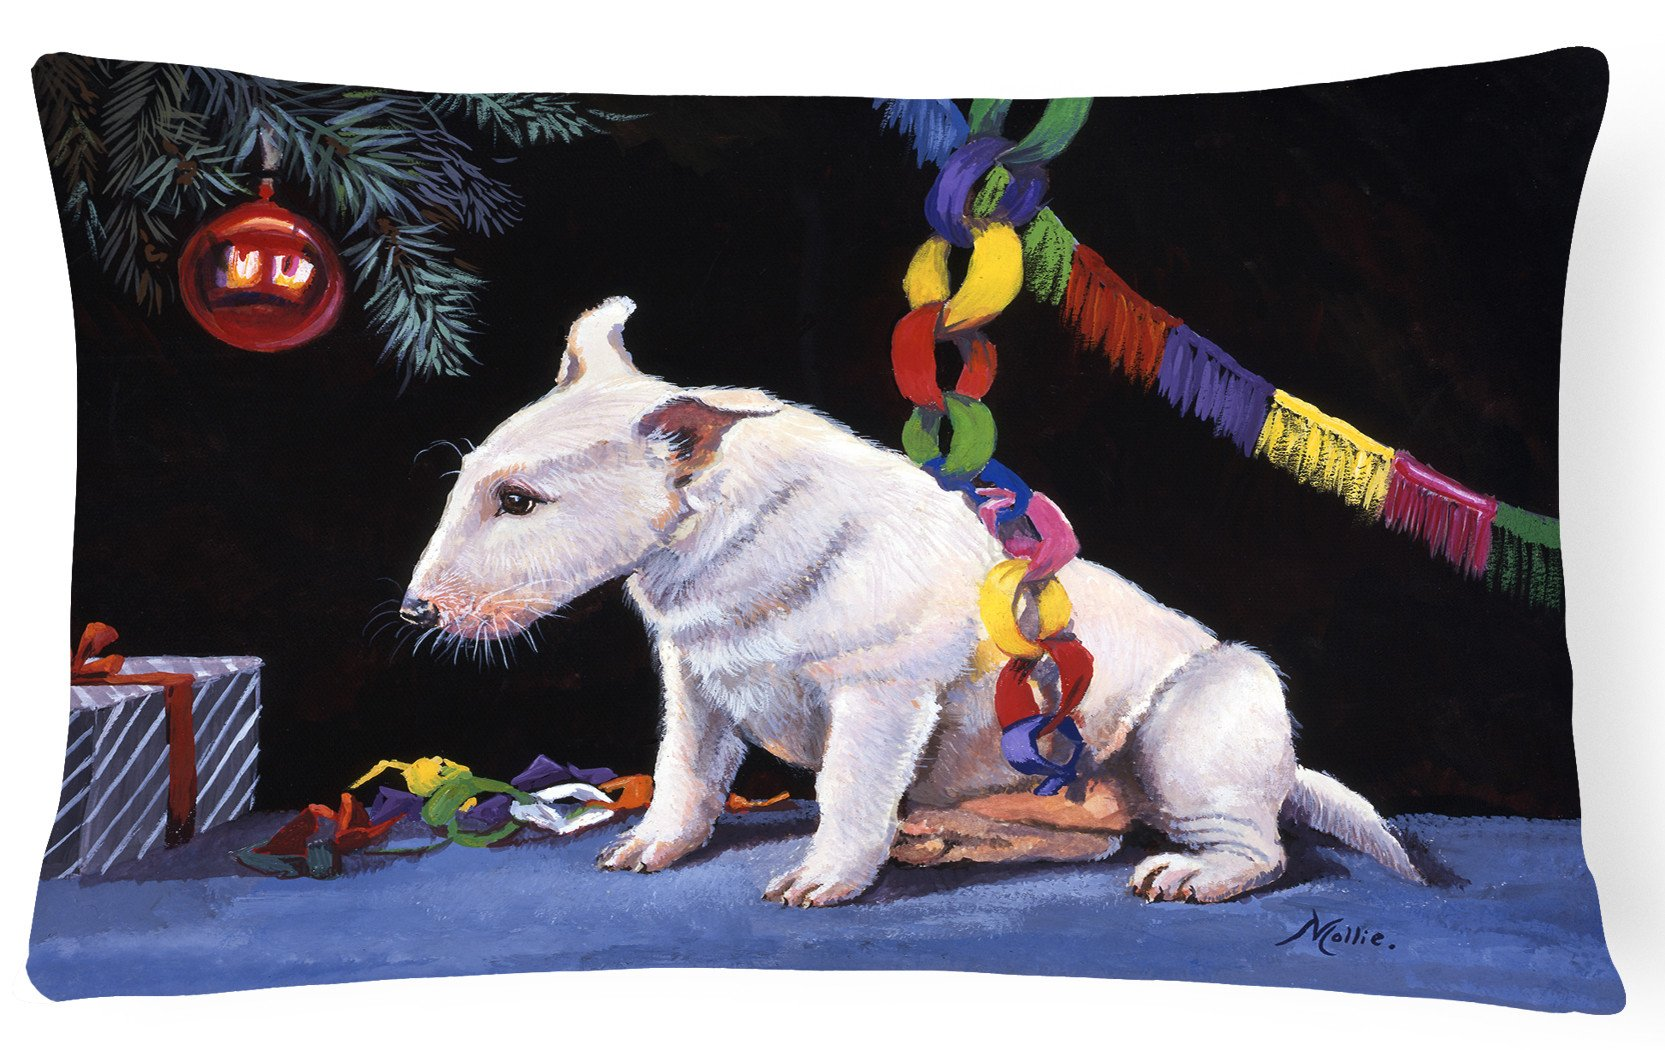 Bull Terrier under the Christmas Tree Fabric Decorative Pillow FMF0012PW1216 - the-store.com